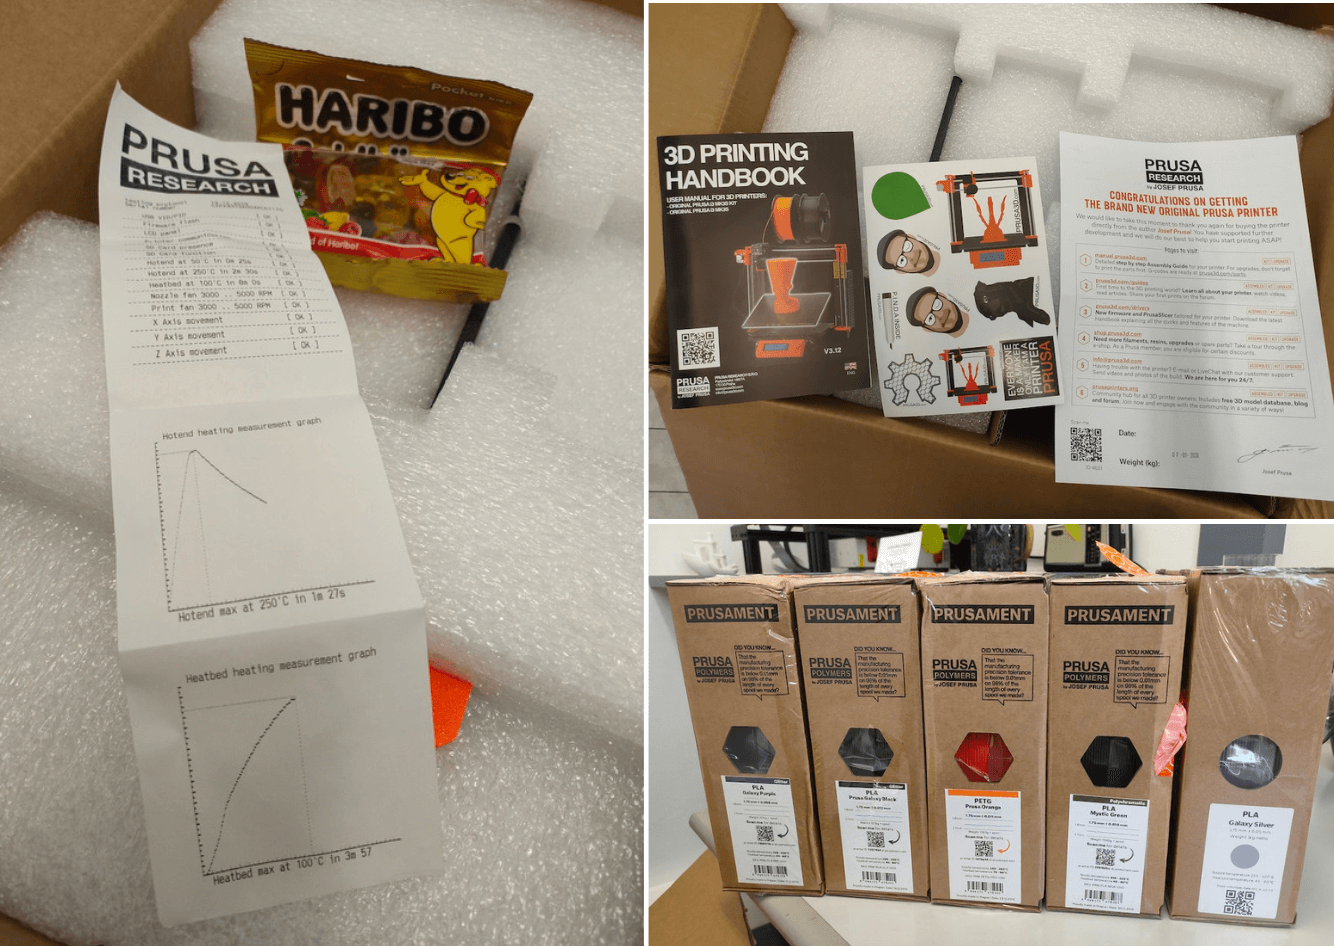 Unboxing PRUSA RESEARCH ORIGINAL PRUSA I3 MK3 REVIEW